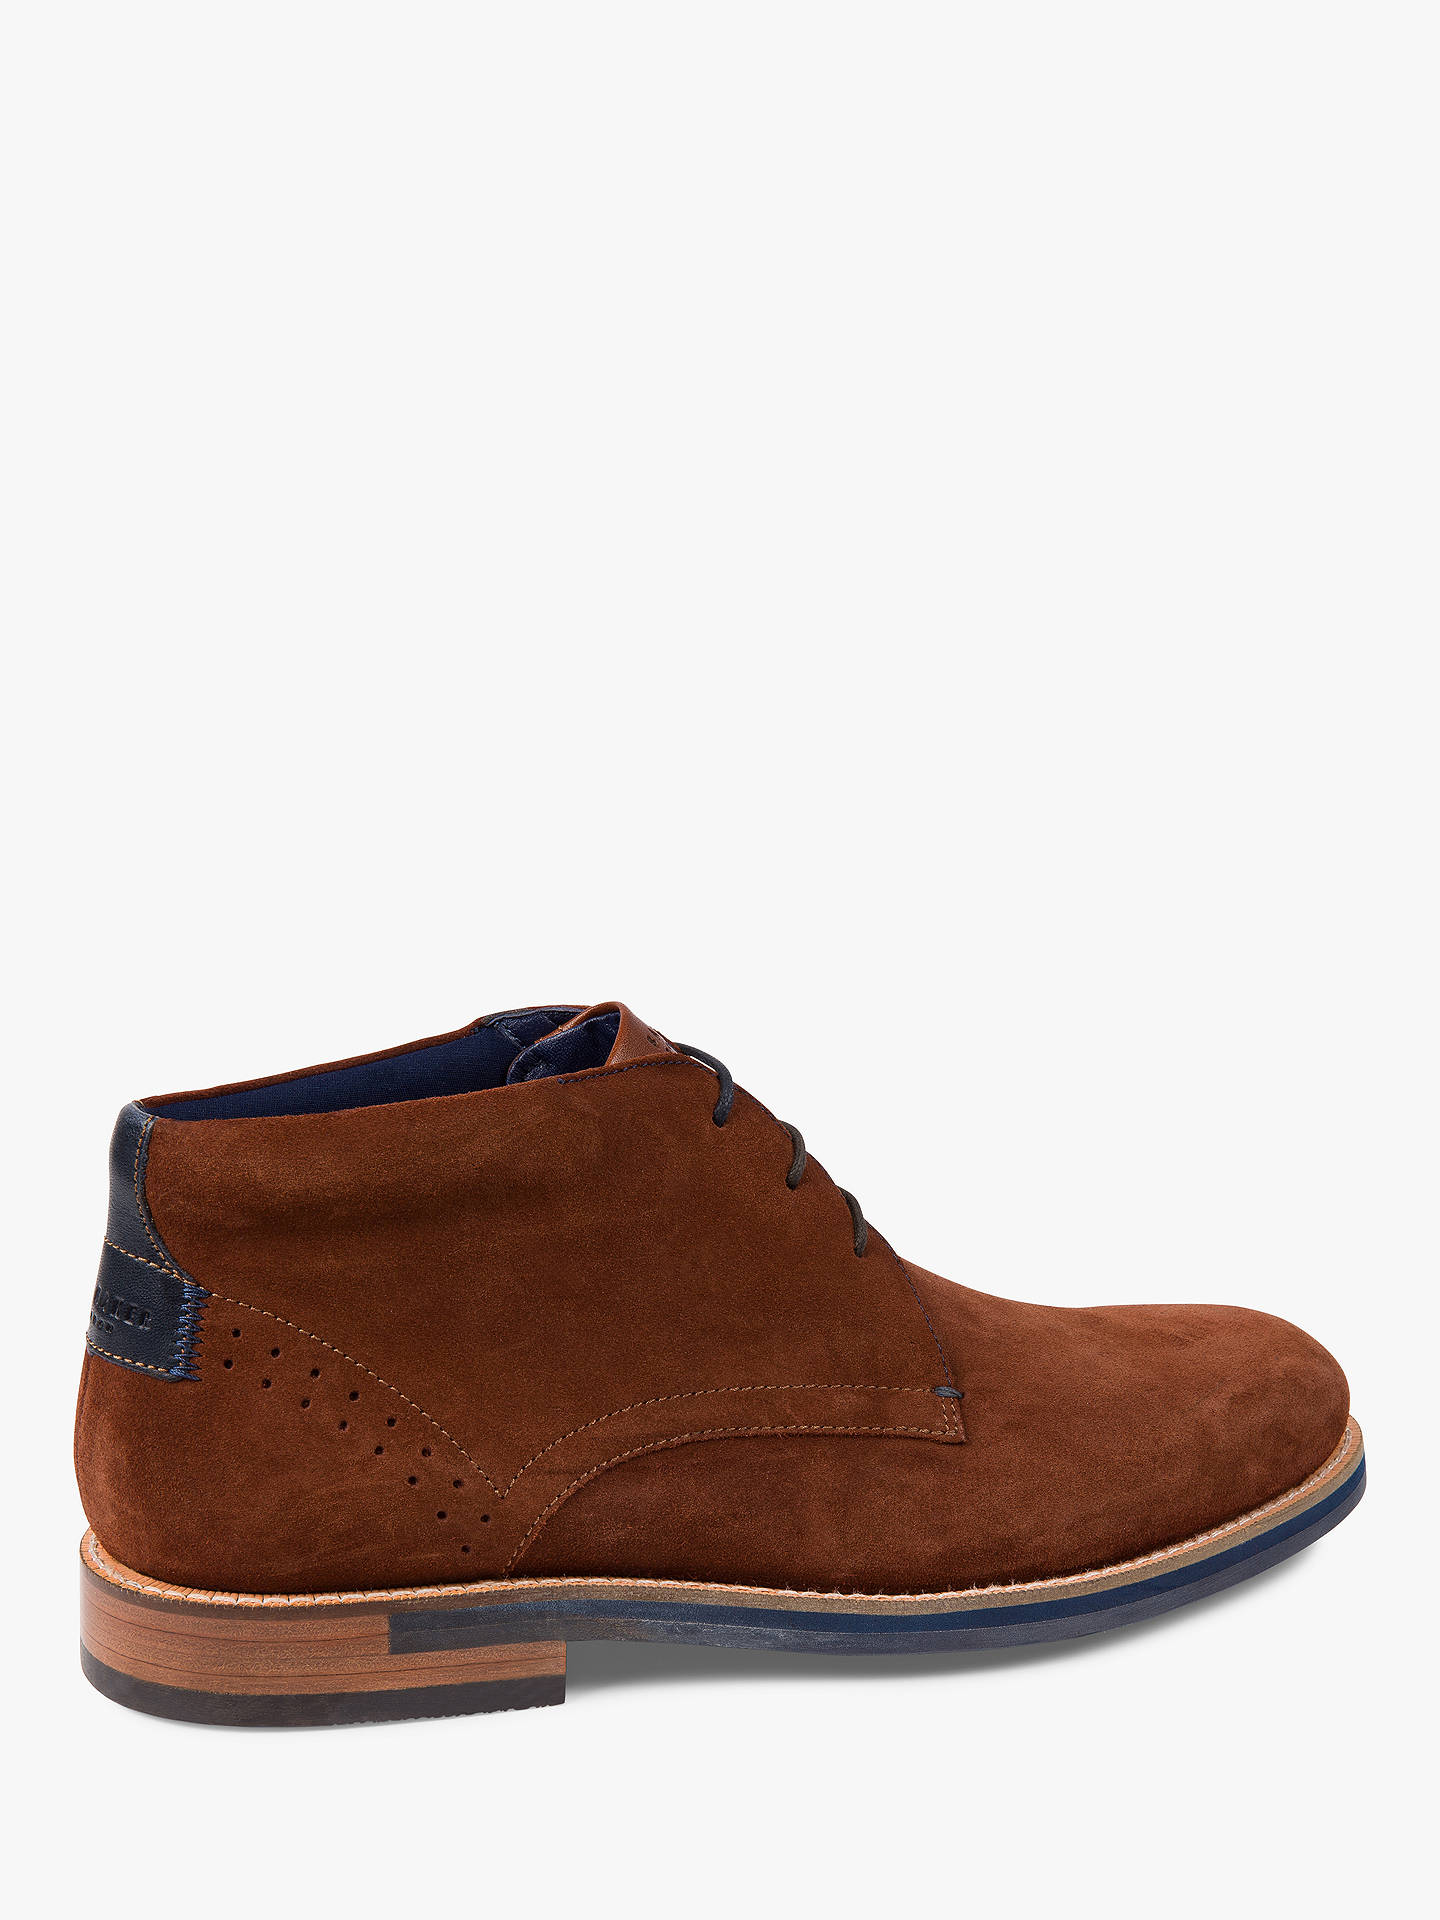 Buy Ted Baker Daiinos Chukka Boots, Brown, 7 Online at johnlewis.com